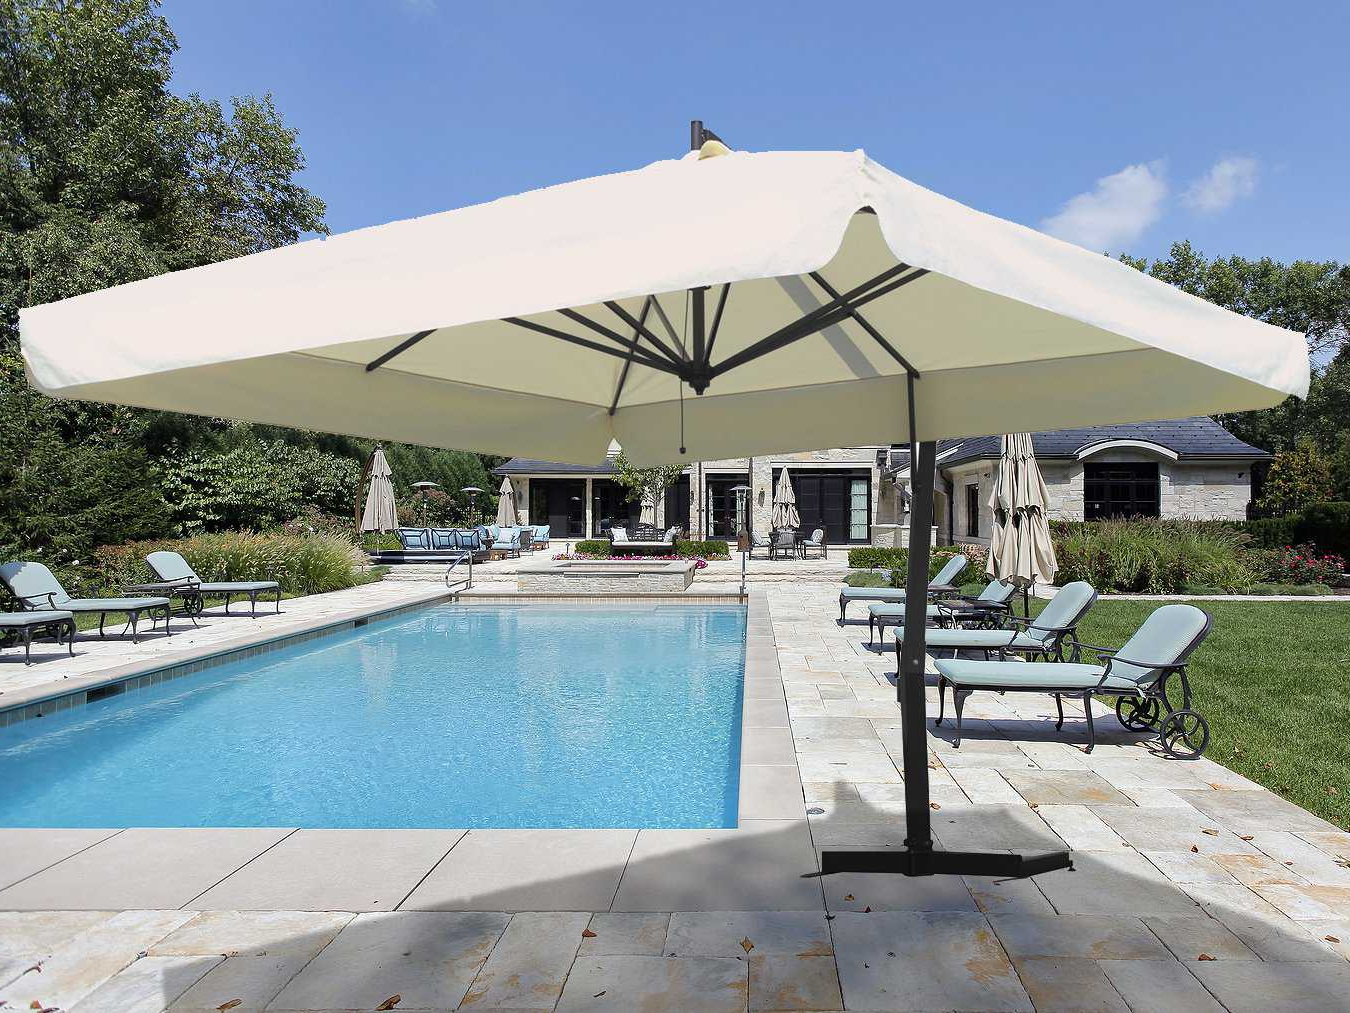 Cantilever Umbrellas For Most Popular Fim P Series Aluminum 10 X 13 Crank Lift Cantilever Umbrella (View 2 of 20)